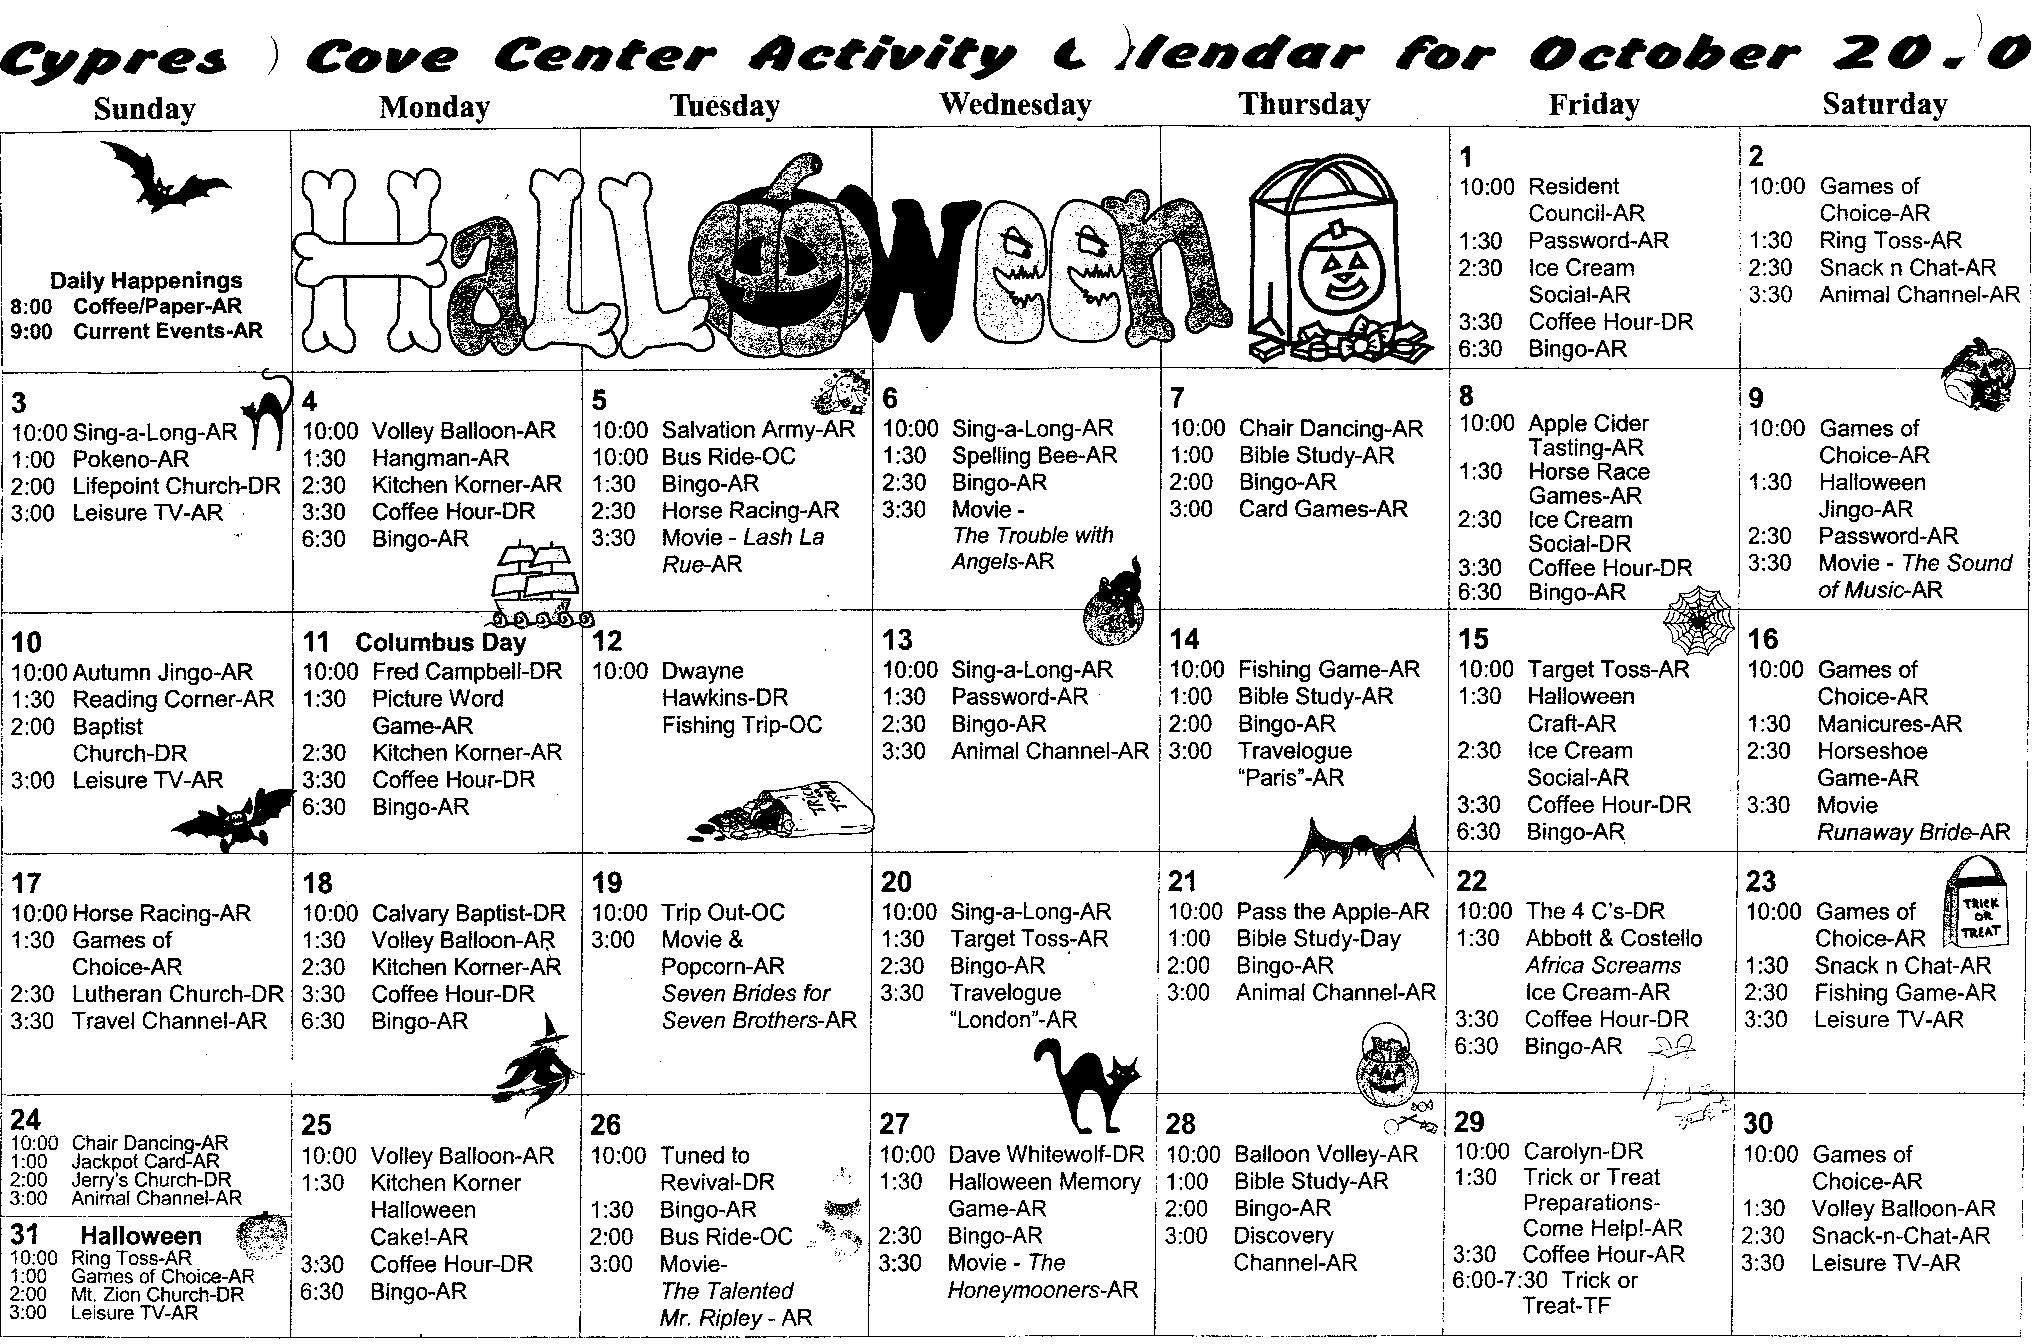 Calendar for Cypress Cove Care Center cypresscovecare.com